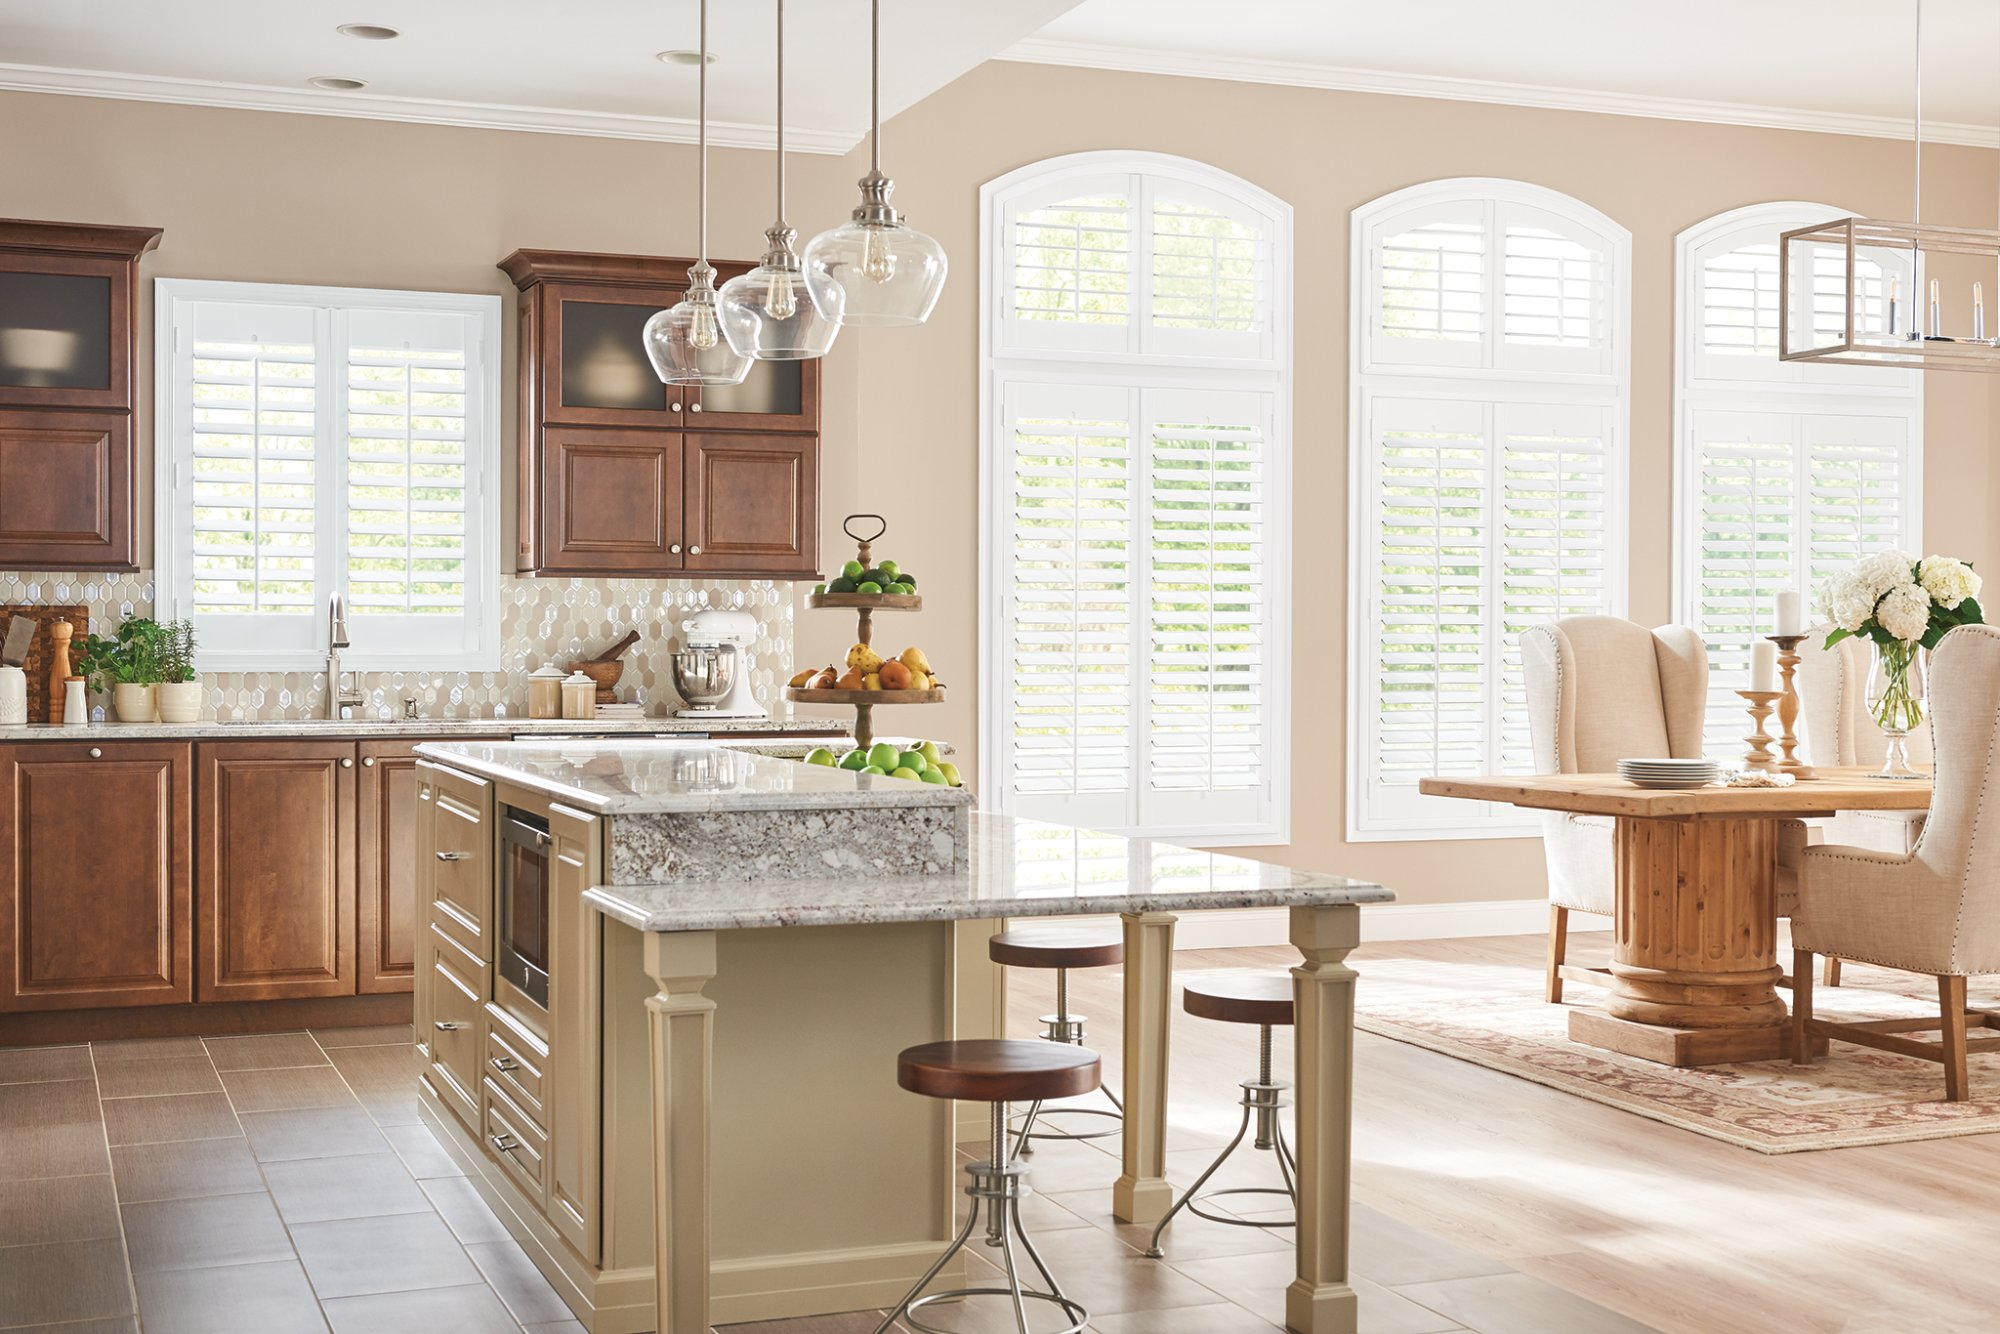 Composite shutters are durable and designed to resist fading, cracking, and peeling.  Composite shutters are a much heavier product than wood shutters but offer a cost effective alternative to wood shutters.